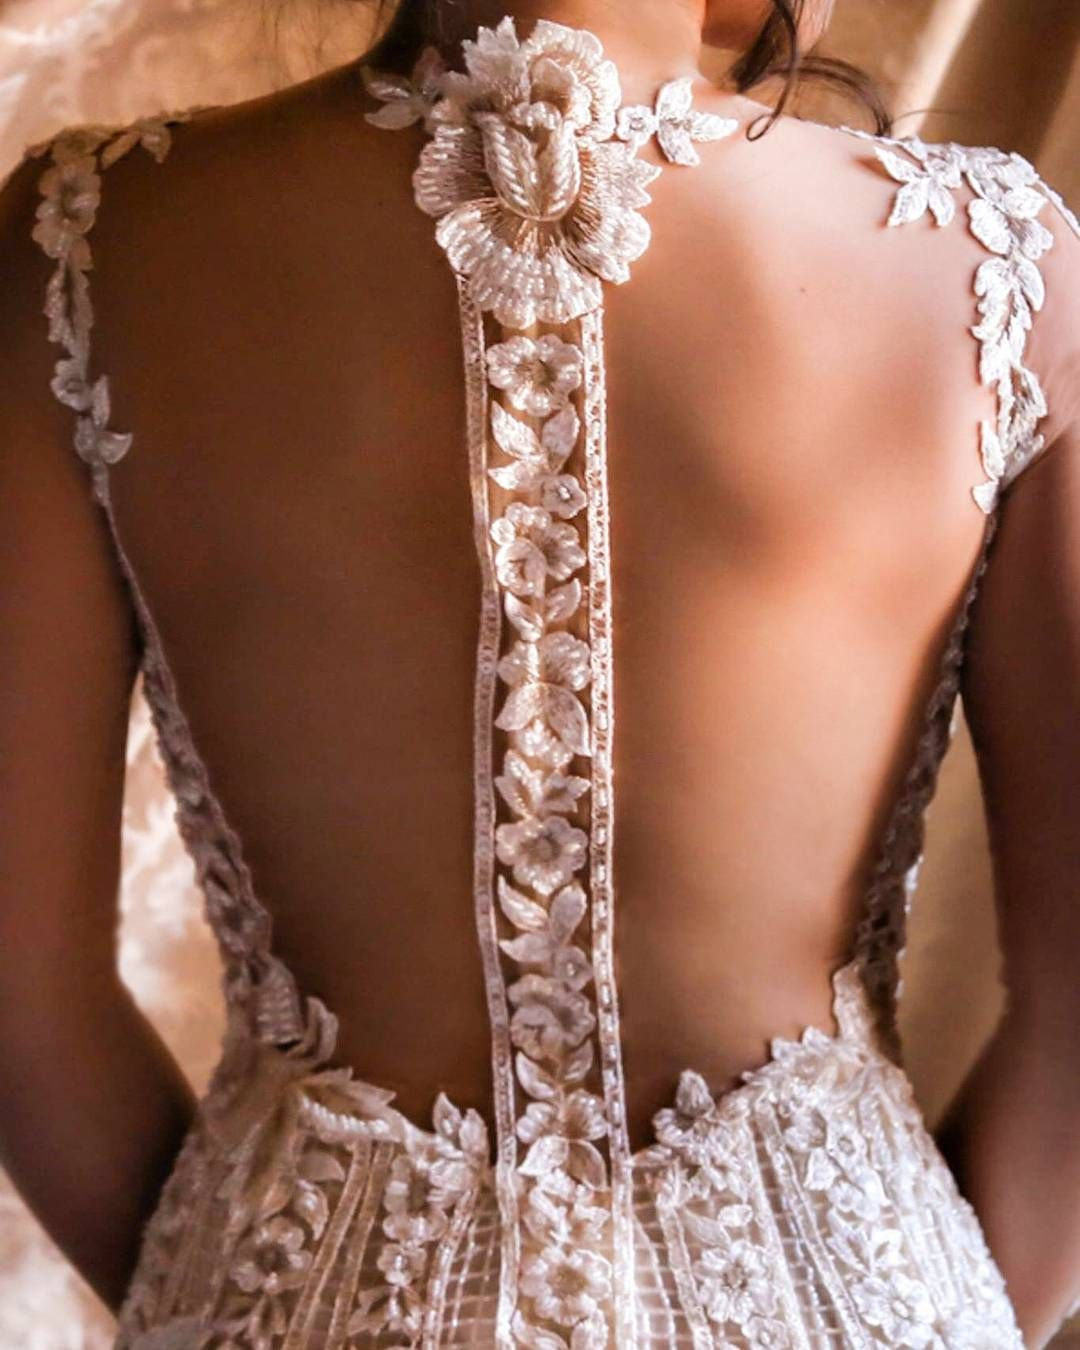 Bellas wedding dress  Itus the little details in life that make a big difference The